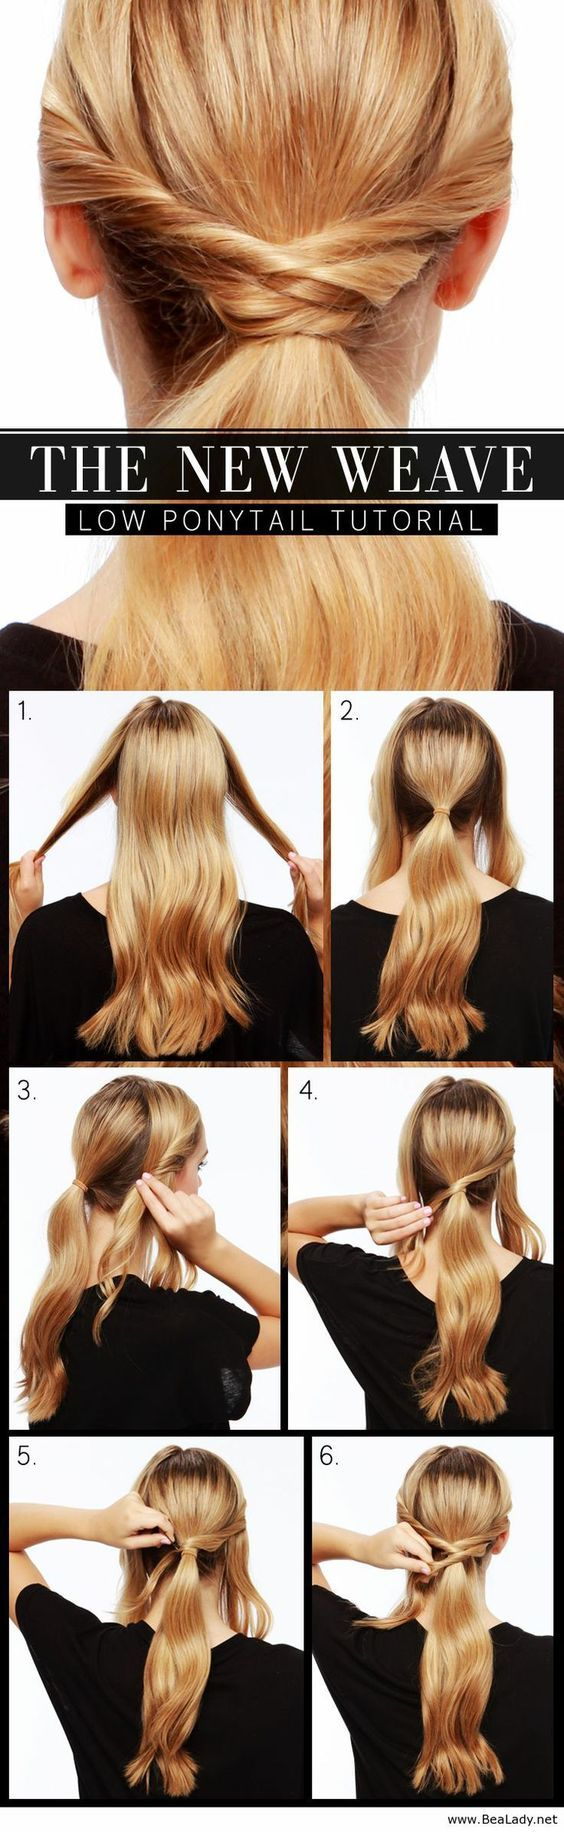 The New Wave: Low Ponytail Tutorial